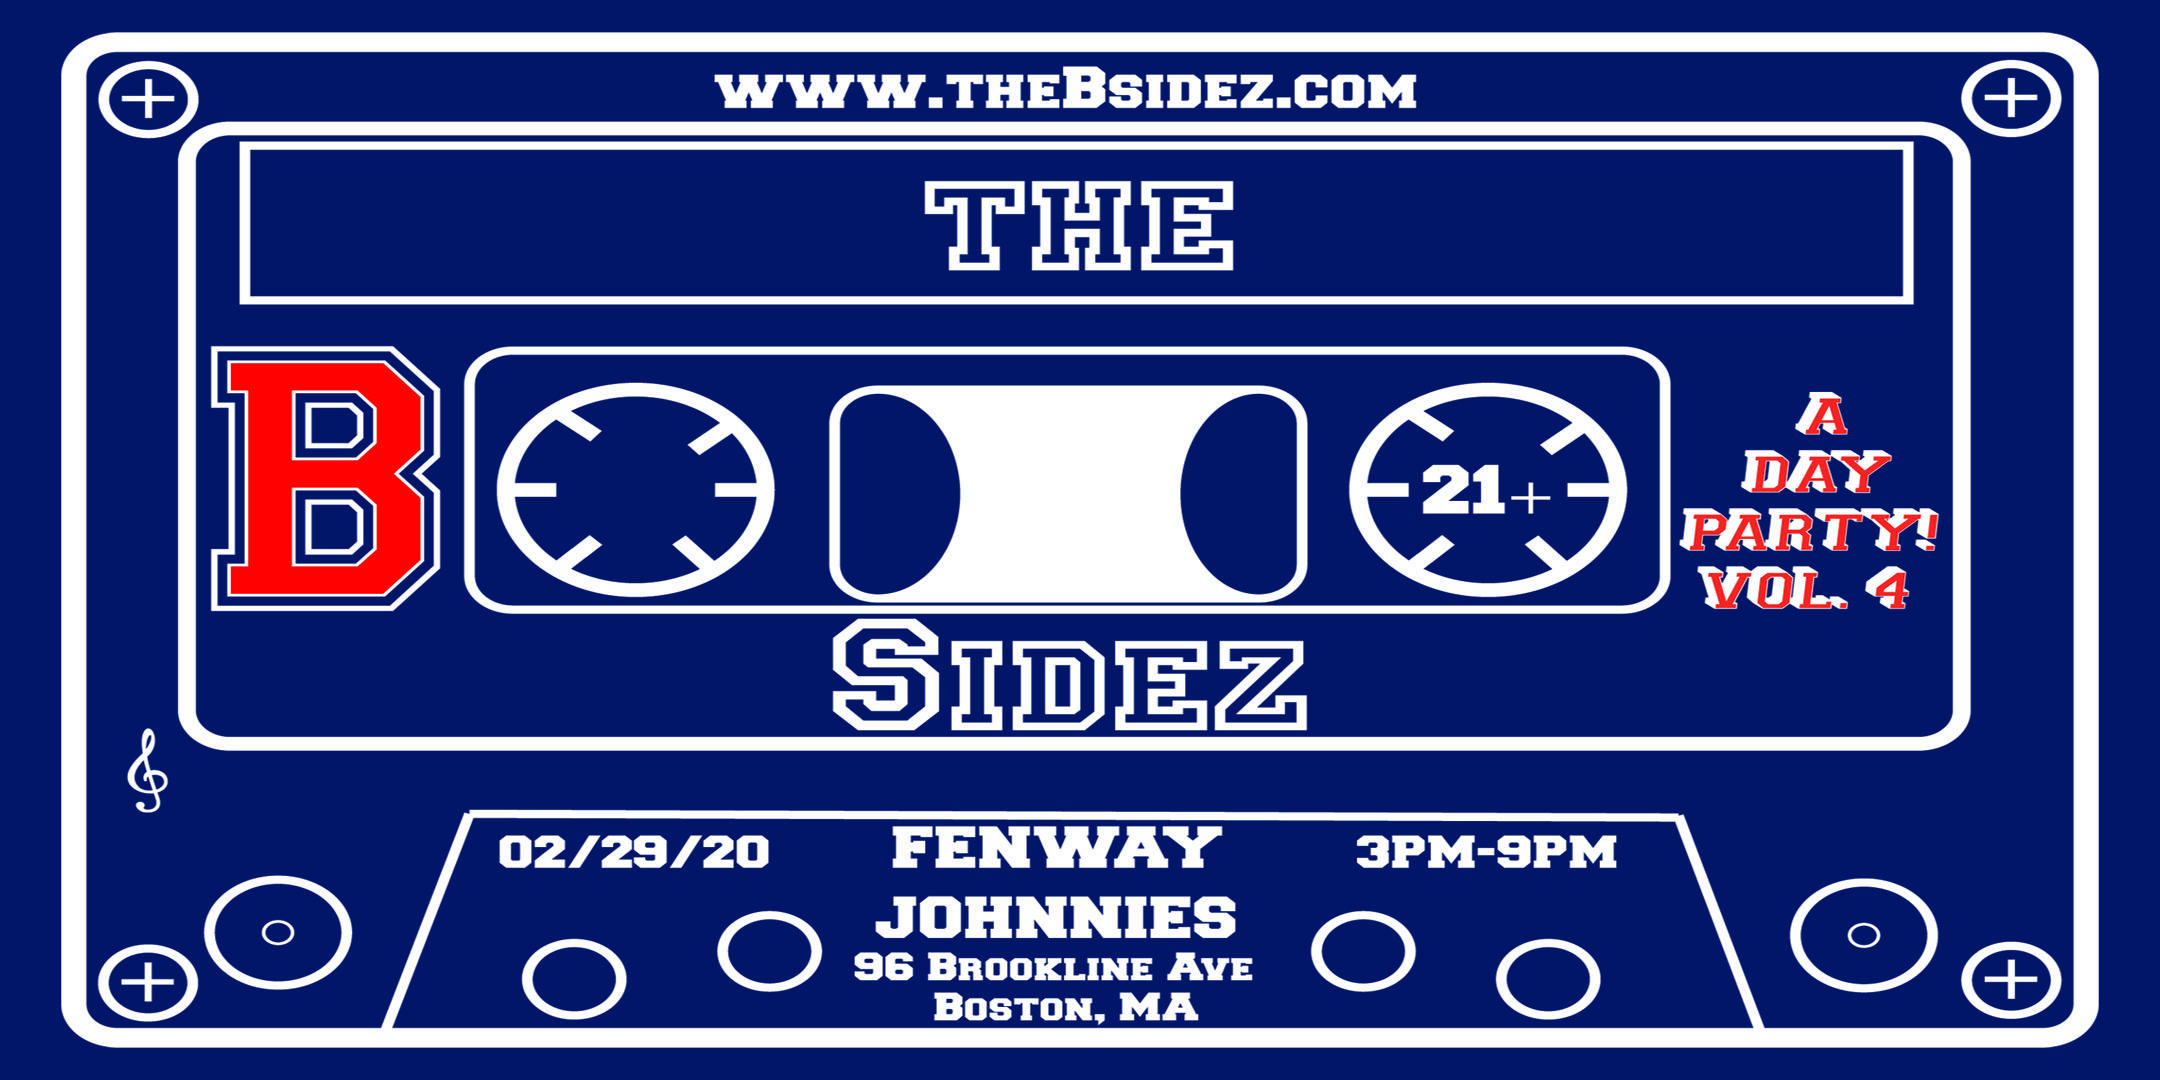 The B-Sidez Day Party Vol. 6